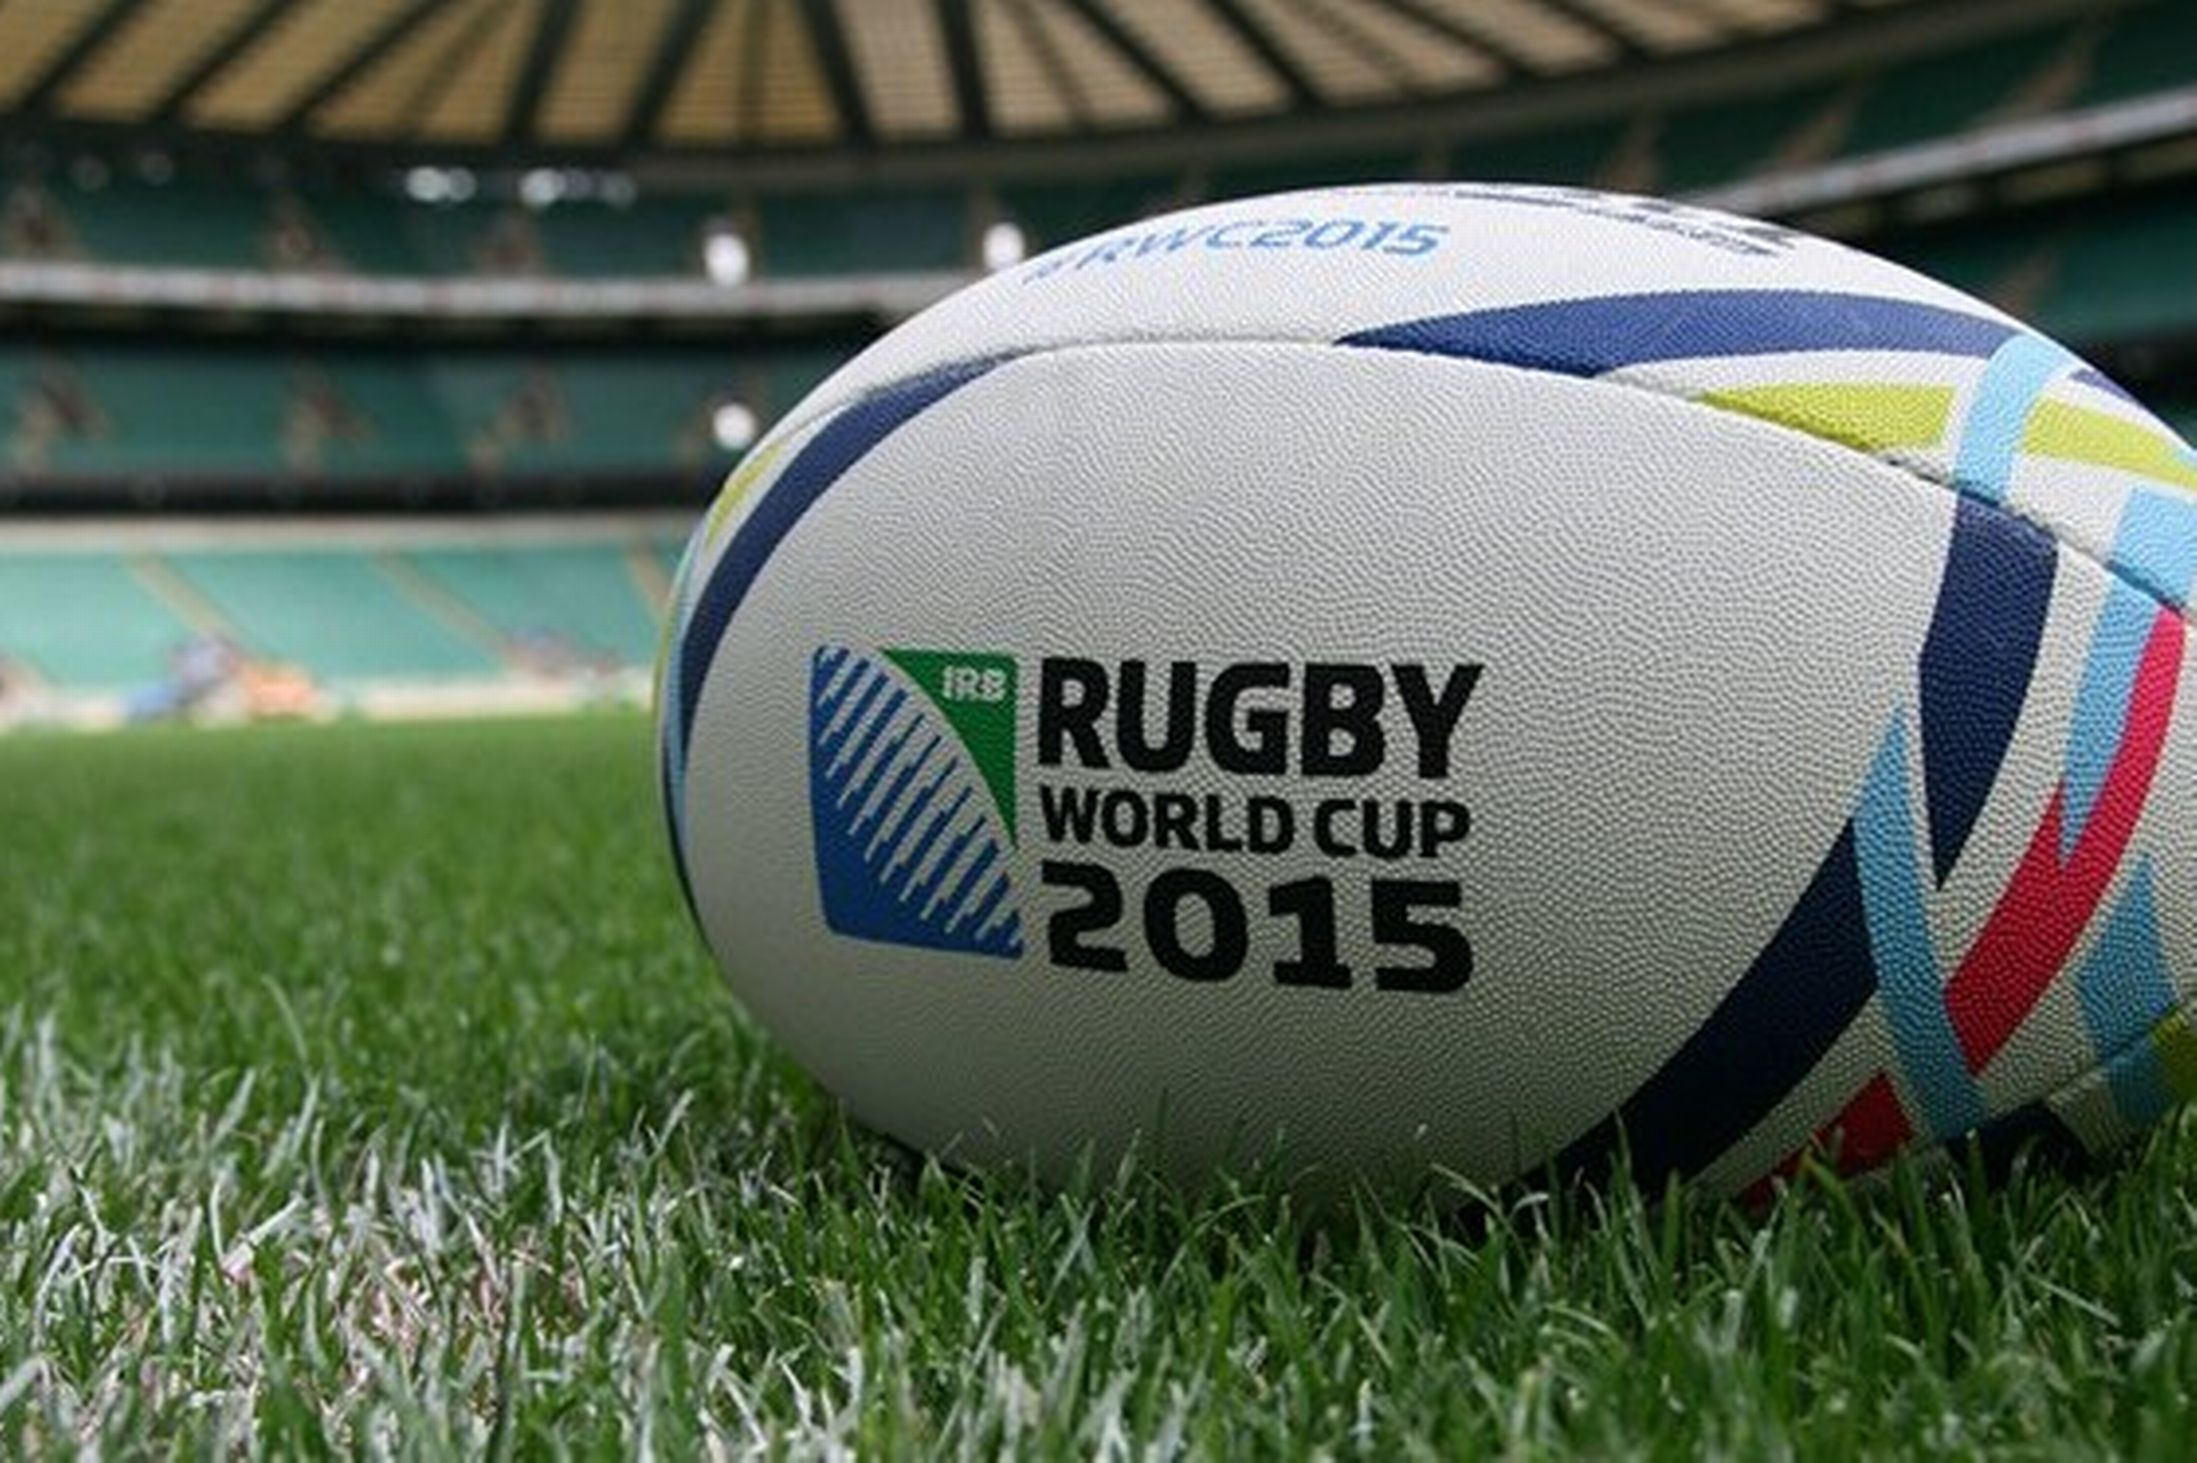 The Legal Issues Surrounding Sponsorship At The Rugby World Cup